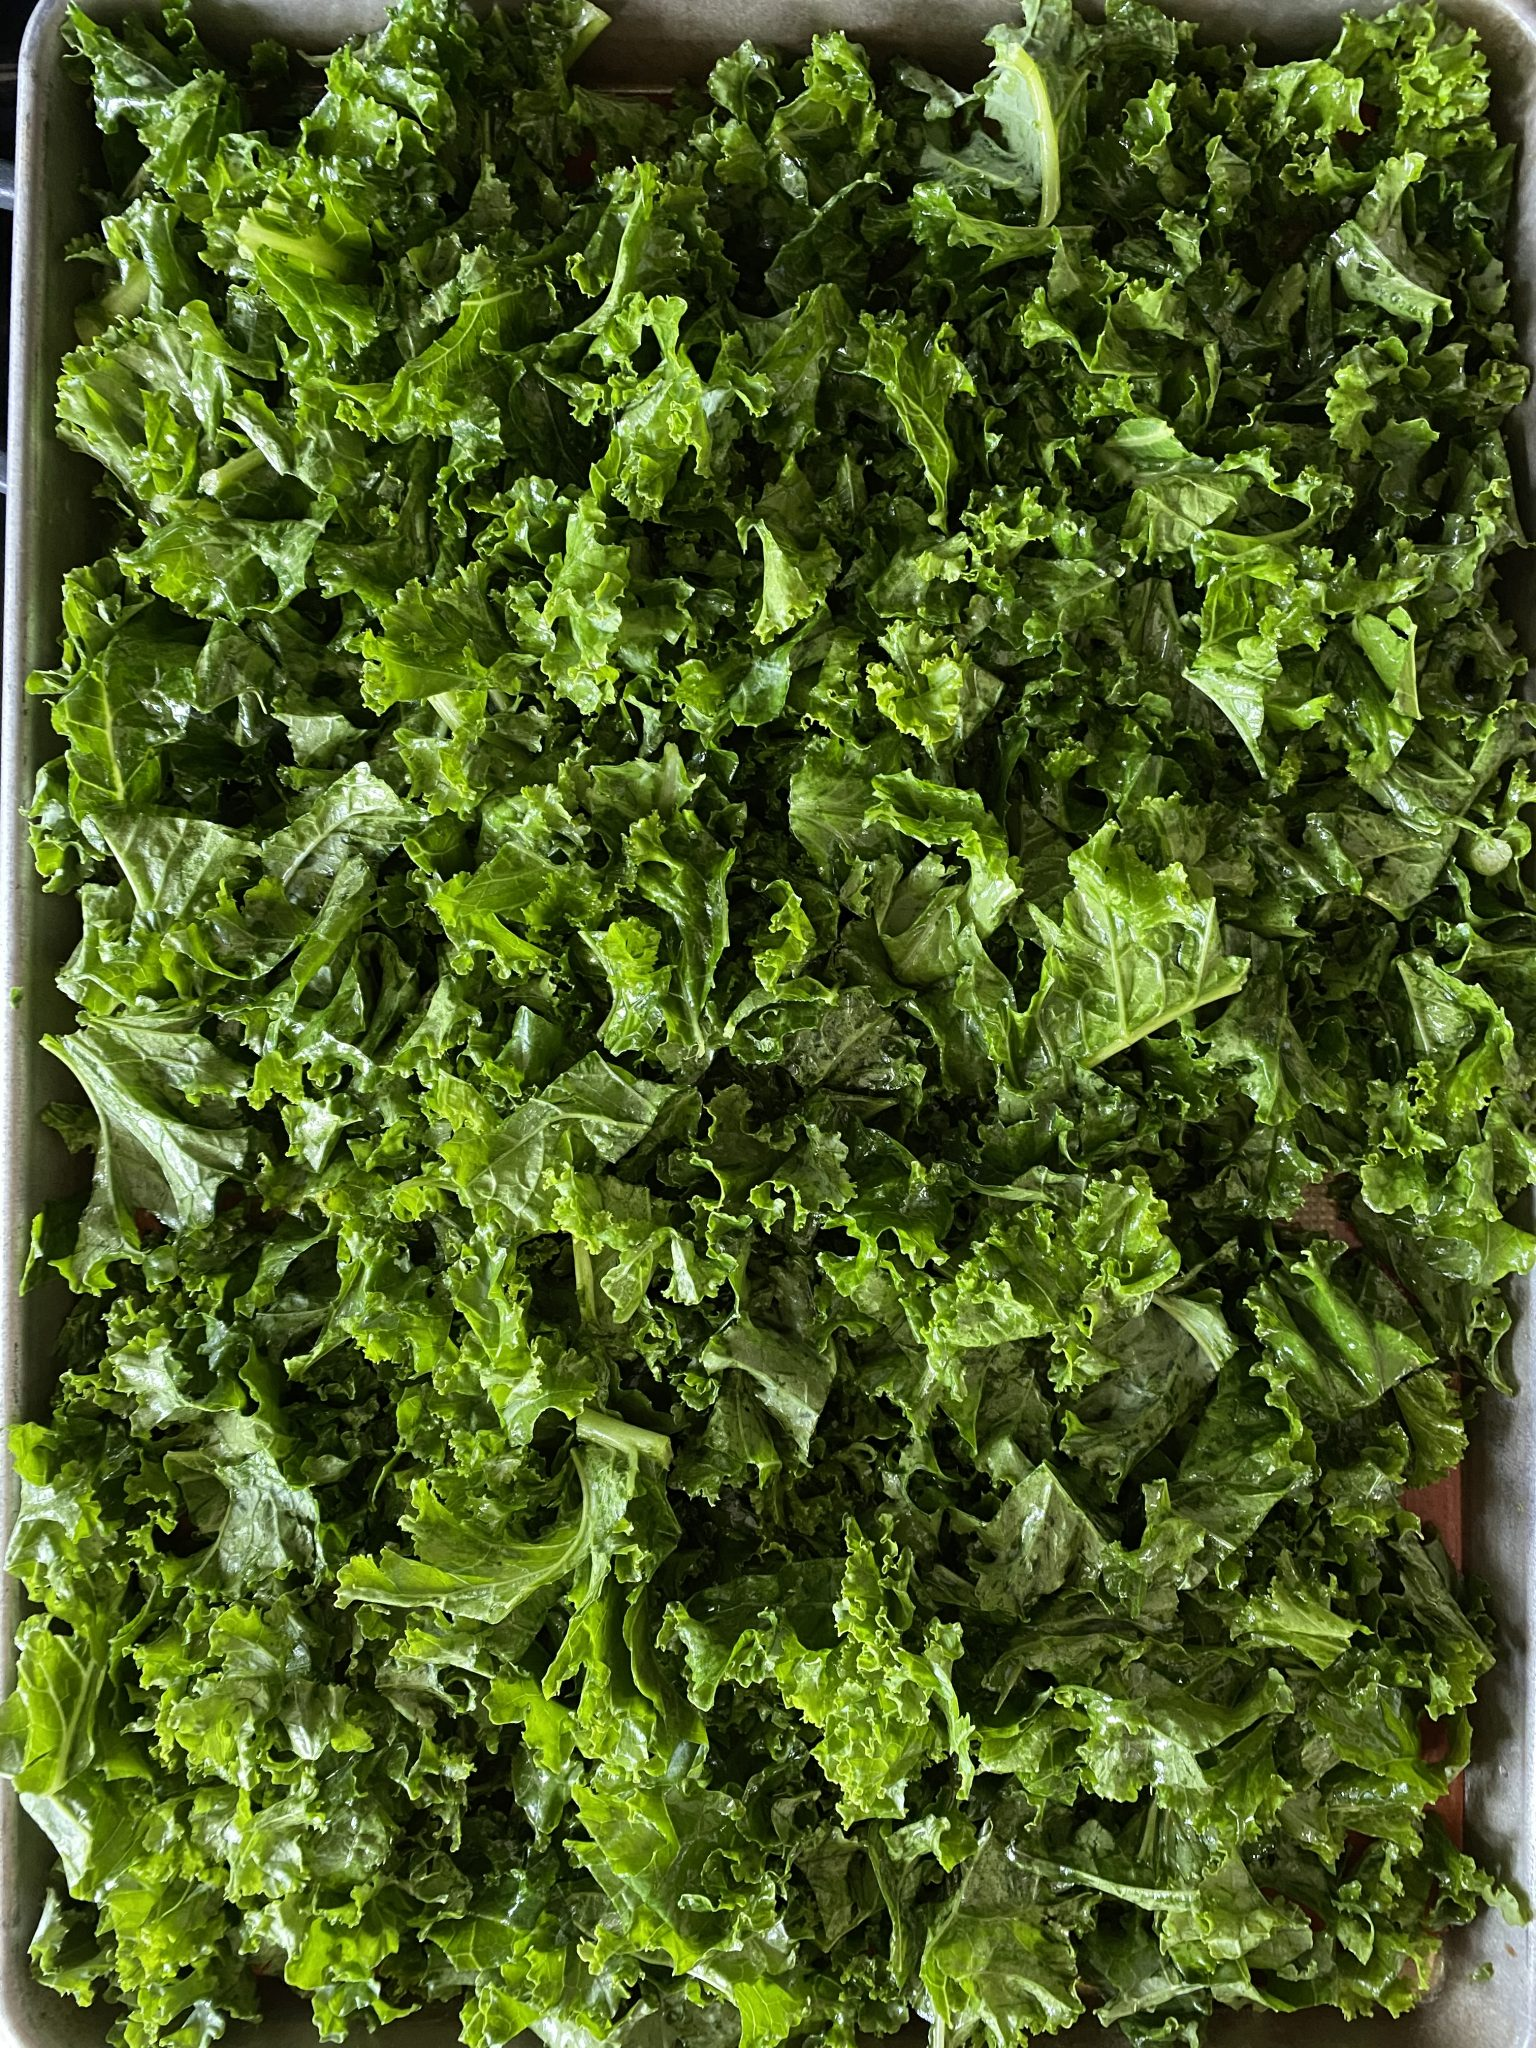 massaged kale on a baking sheet, ready for roasting.